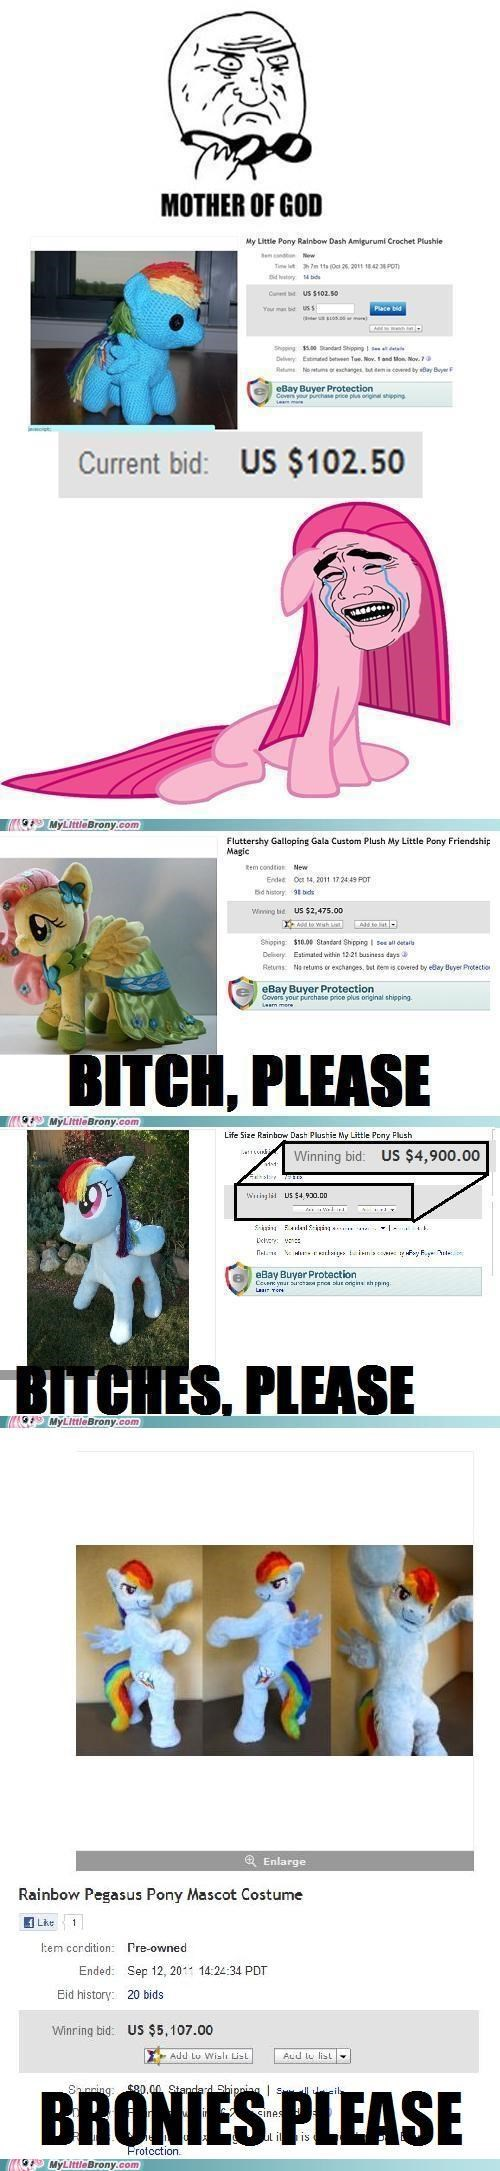 best of week Bronies expensive IRL mother of god please plushies - 5392173568